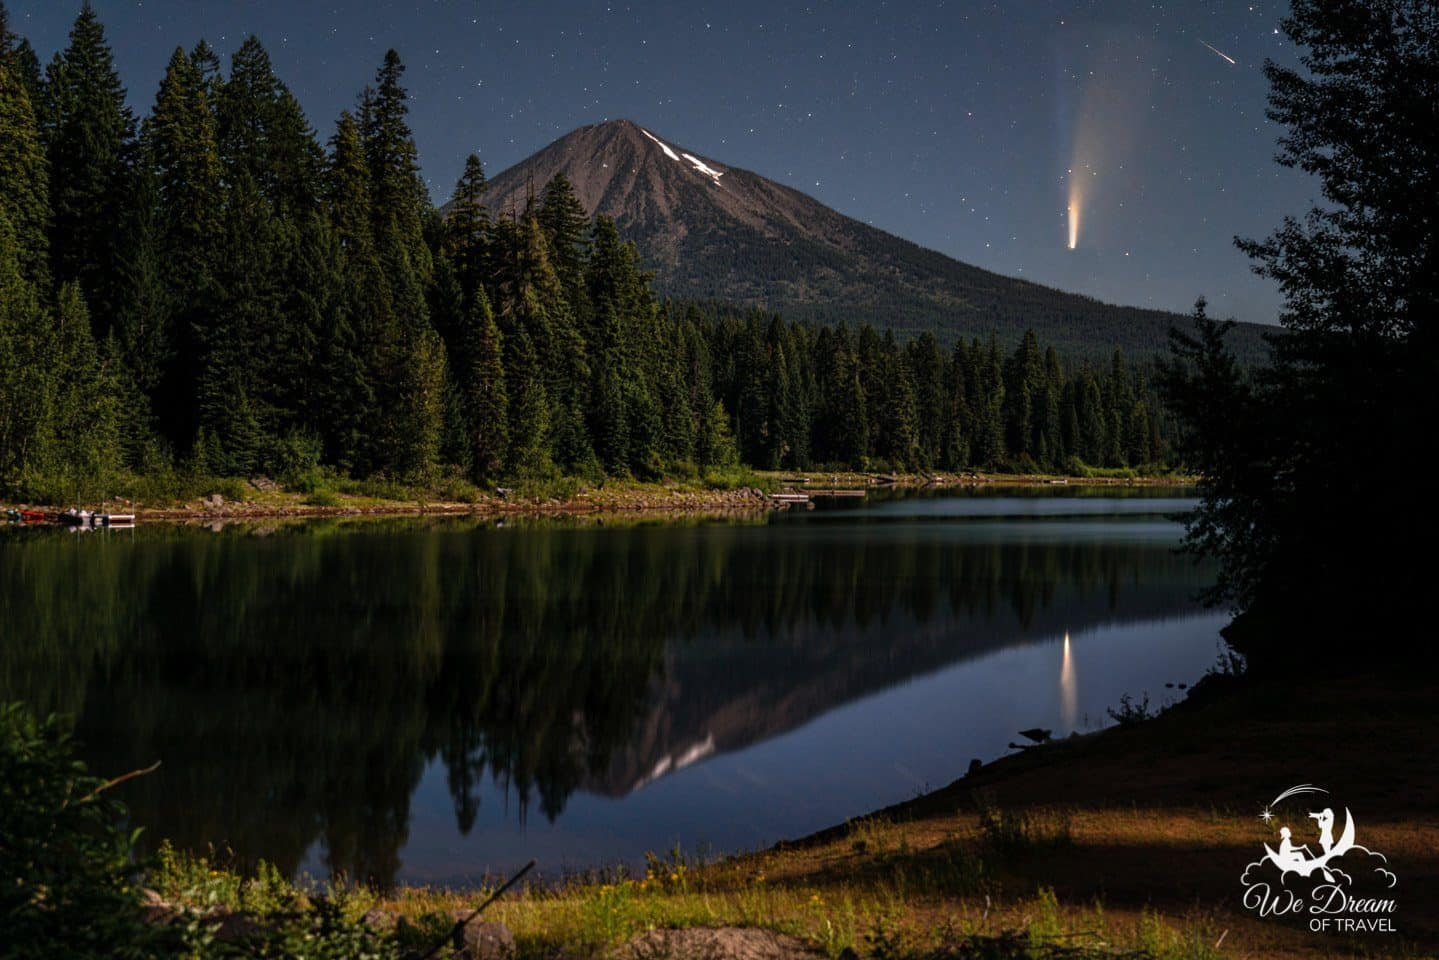 Neowise Comet over Mt Mcloughlin, photographed from Fish Lake in Oregon